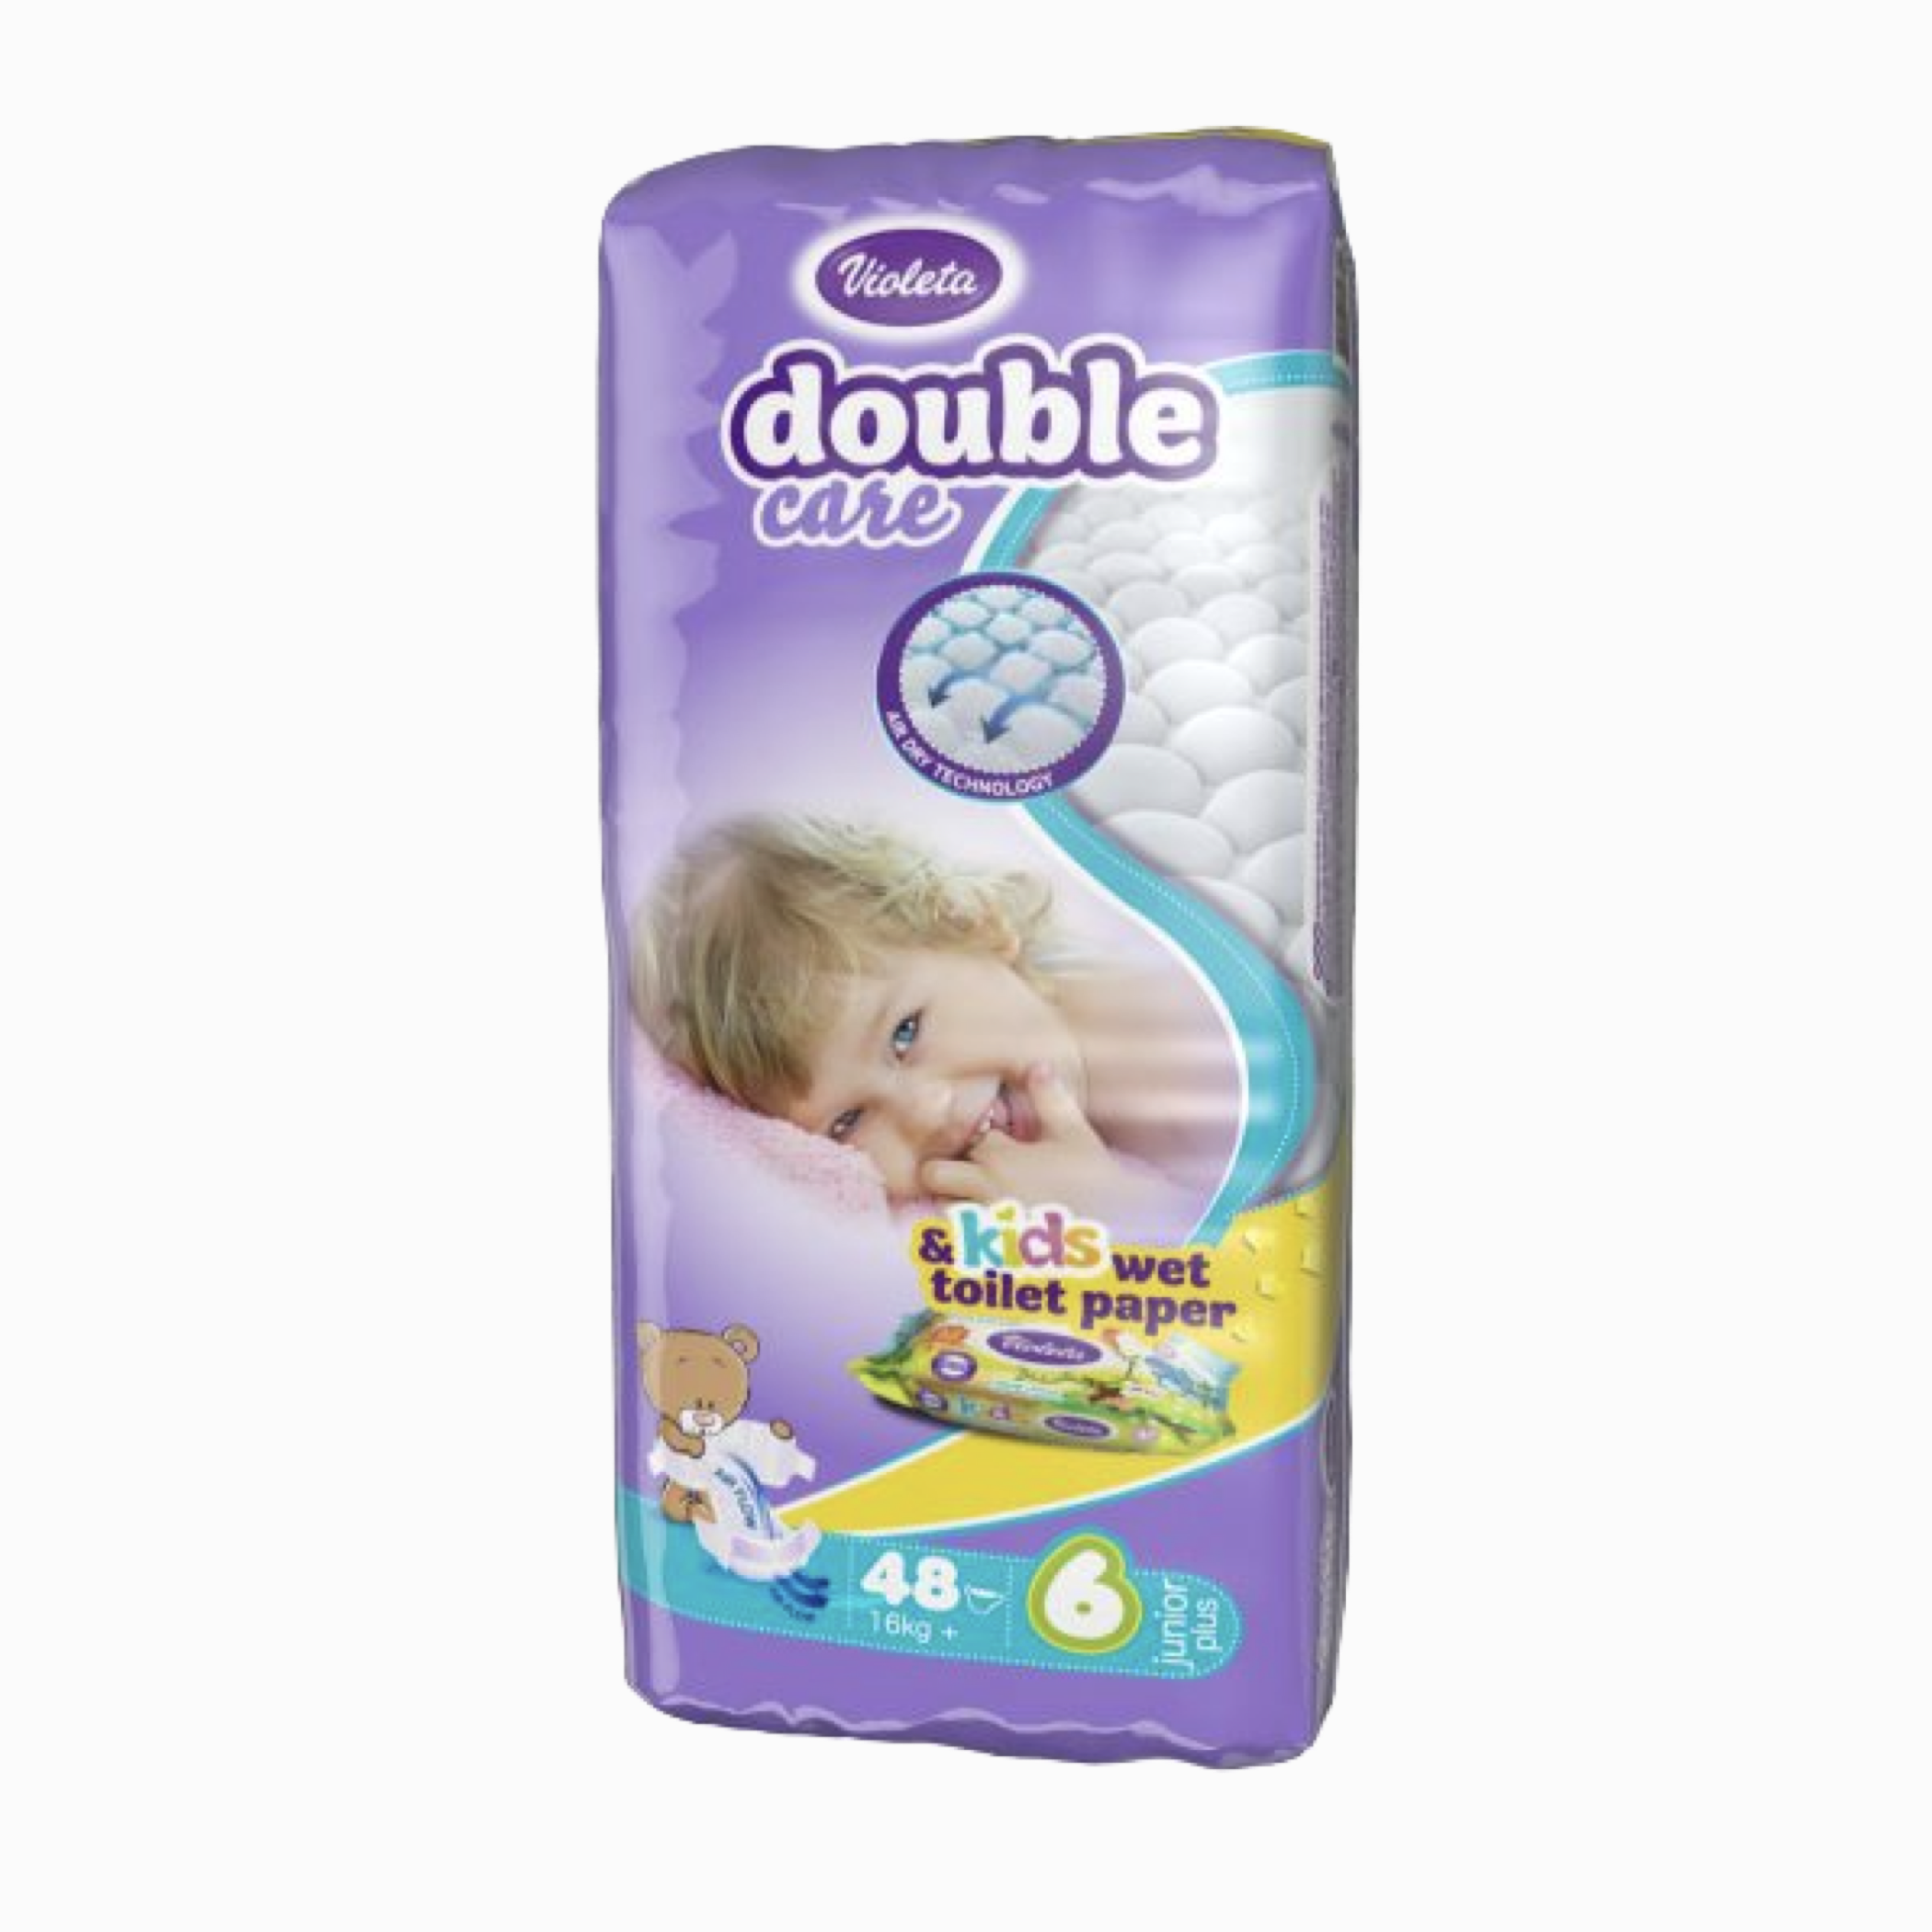 VIOLETA PELENA DOUBLE CARE AIR DRY 48(JUN.PL. 11-25) NR 6 (SM26798)